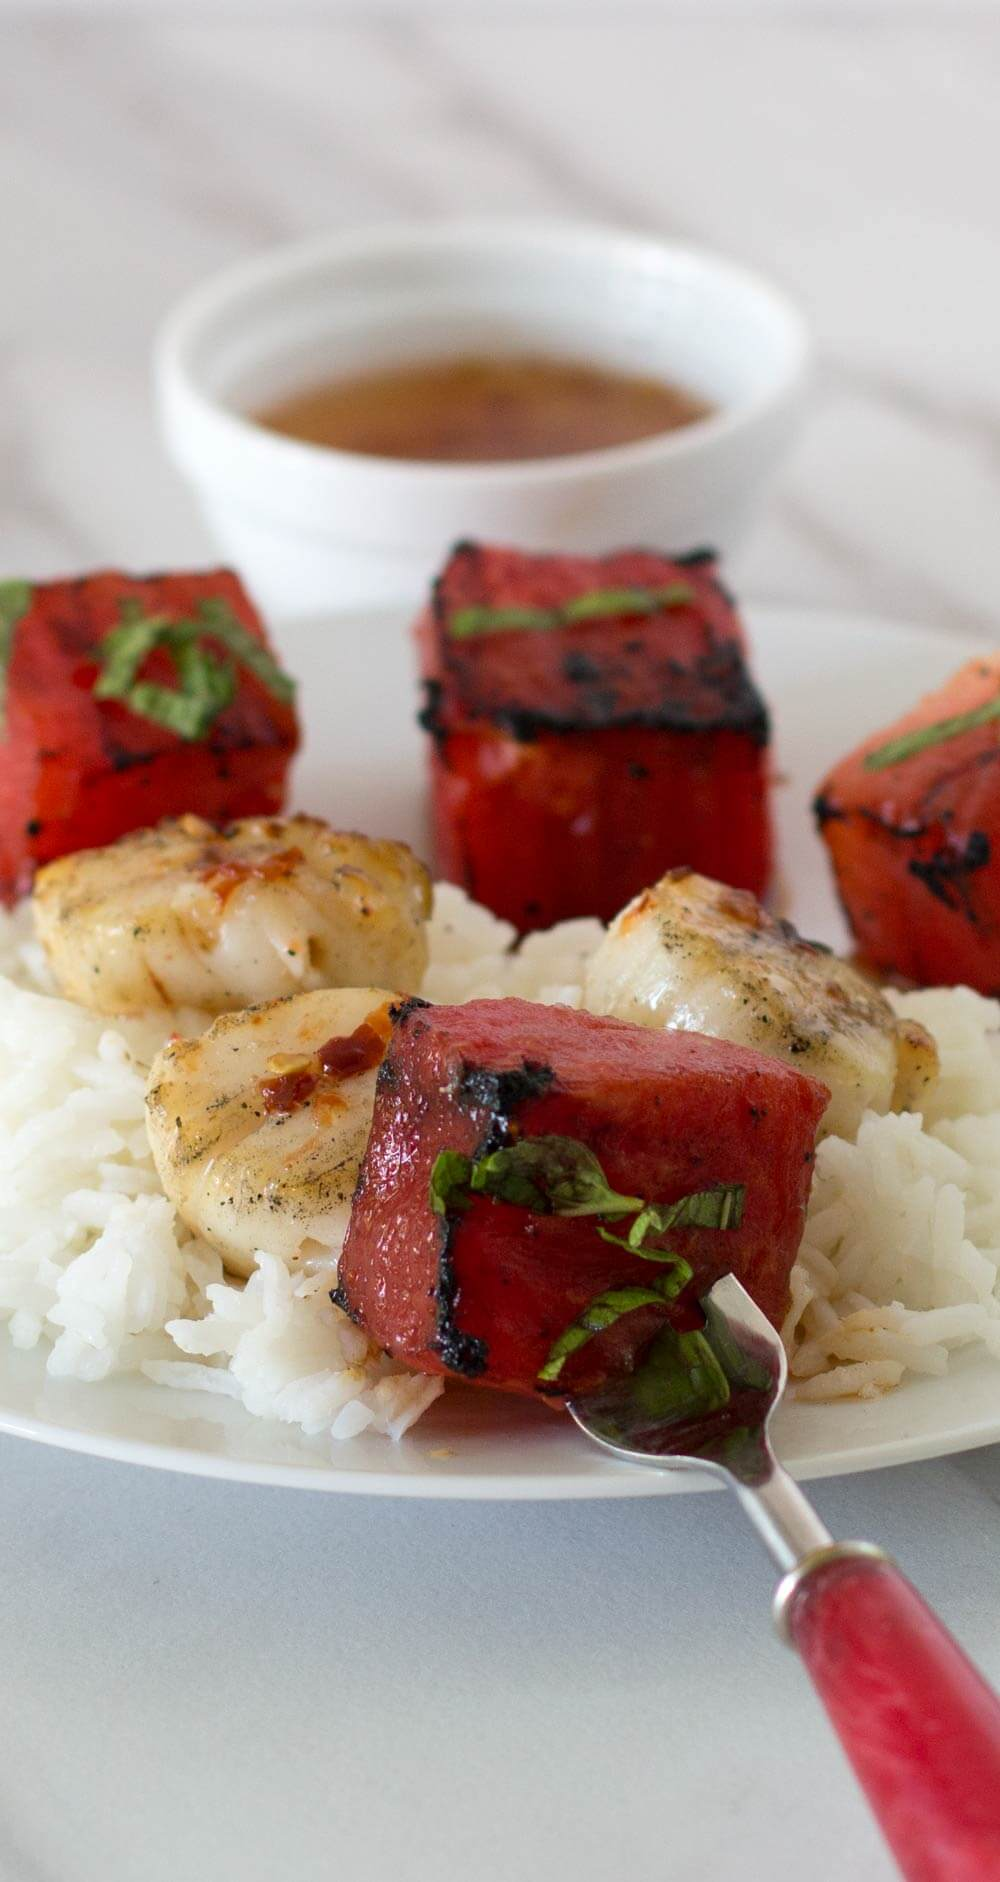 Grilled Watermelon Scallop Shish Kebobs with a watermelon cube on a fork